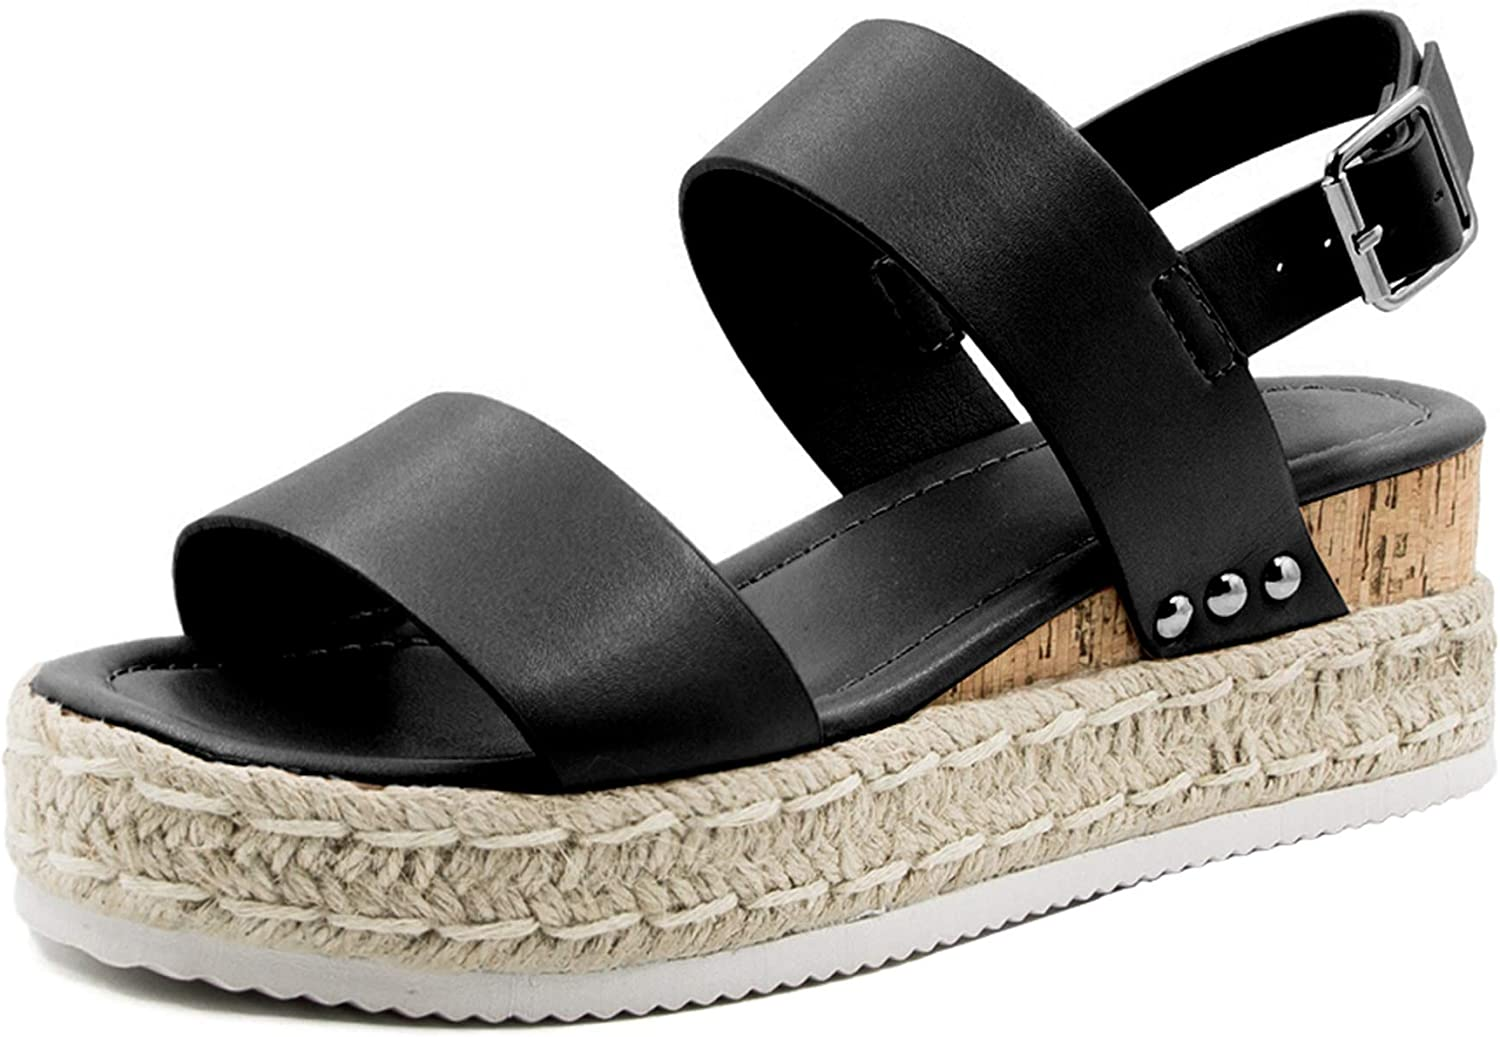 Athlefit Women's Espadrilles latest Sandals Max 48% OFF Ankle Strap Buckle Sa Wedge